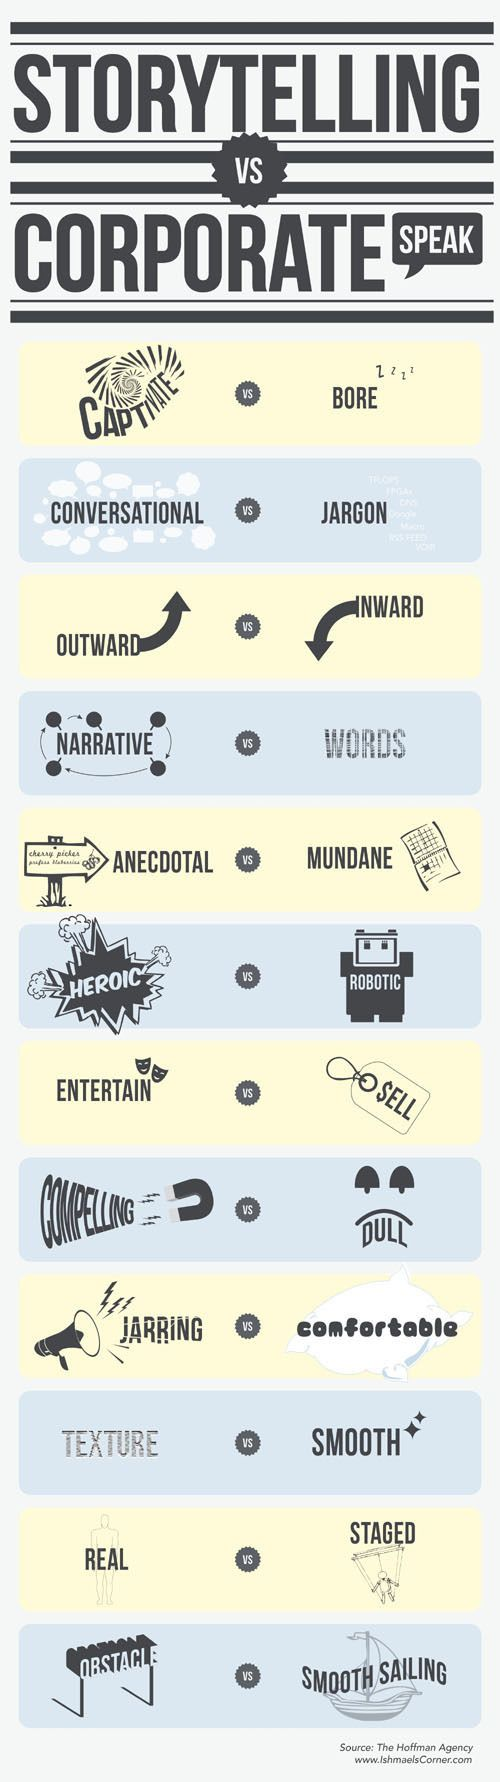 Business-communication - storiytelling vs corporate #infografia #ccentral